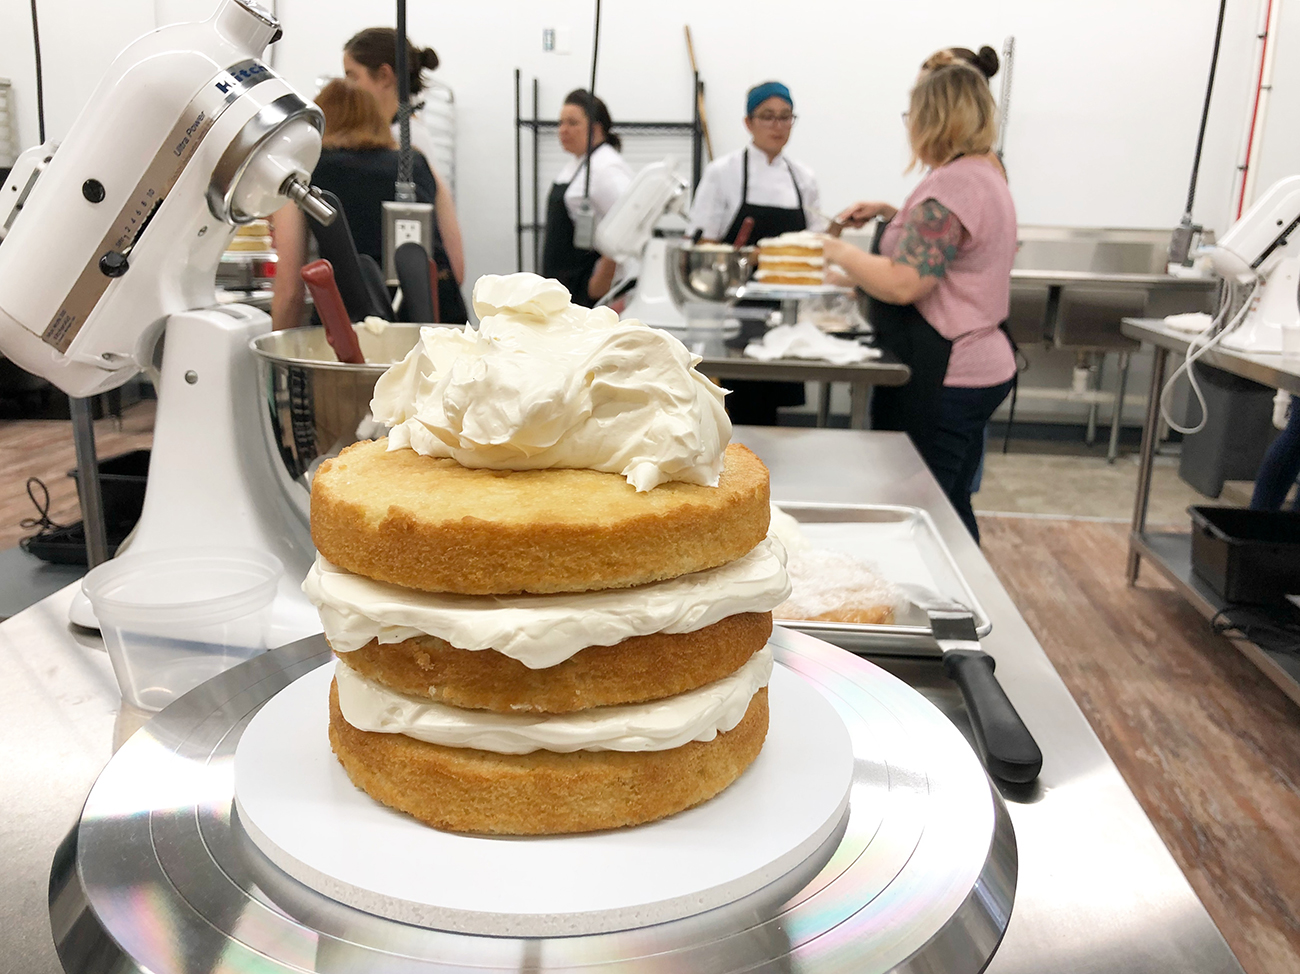 Sweet Spot Studio, a hands-on baking classroom from pastry chef Jossie Lukacik, is now open